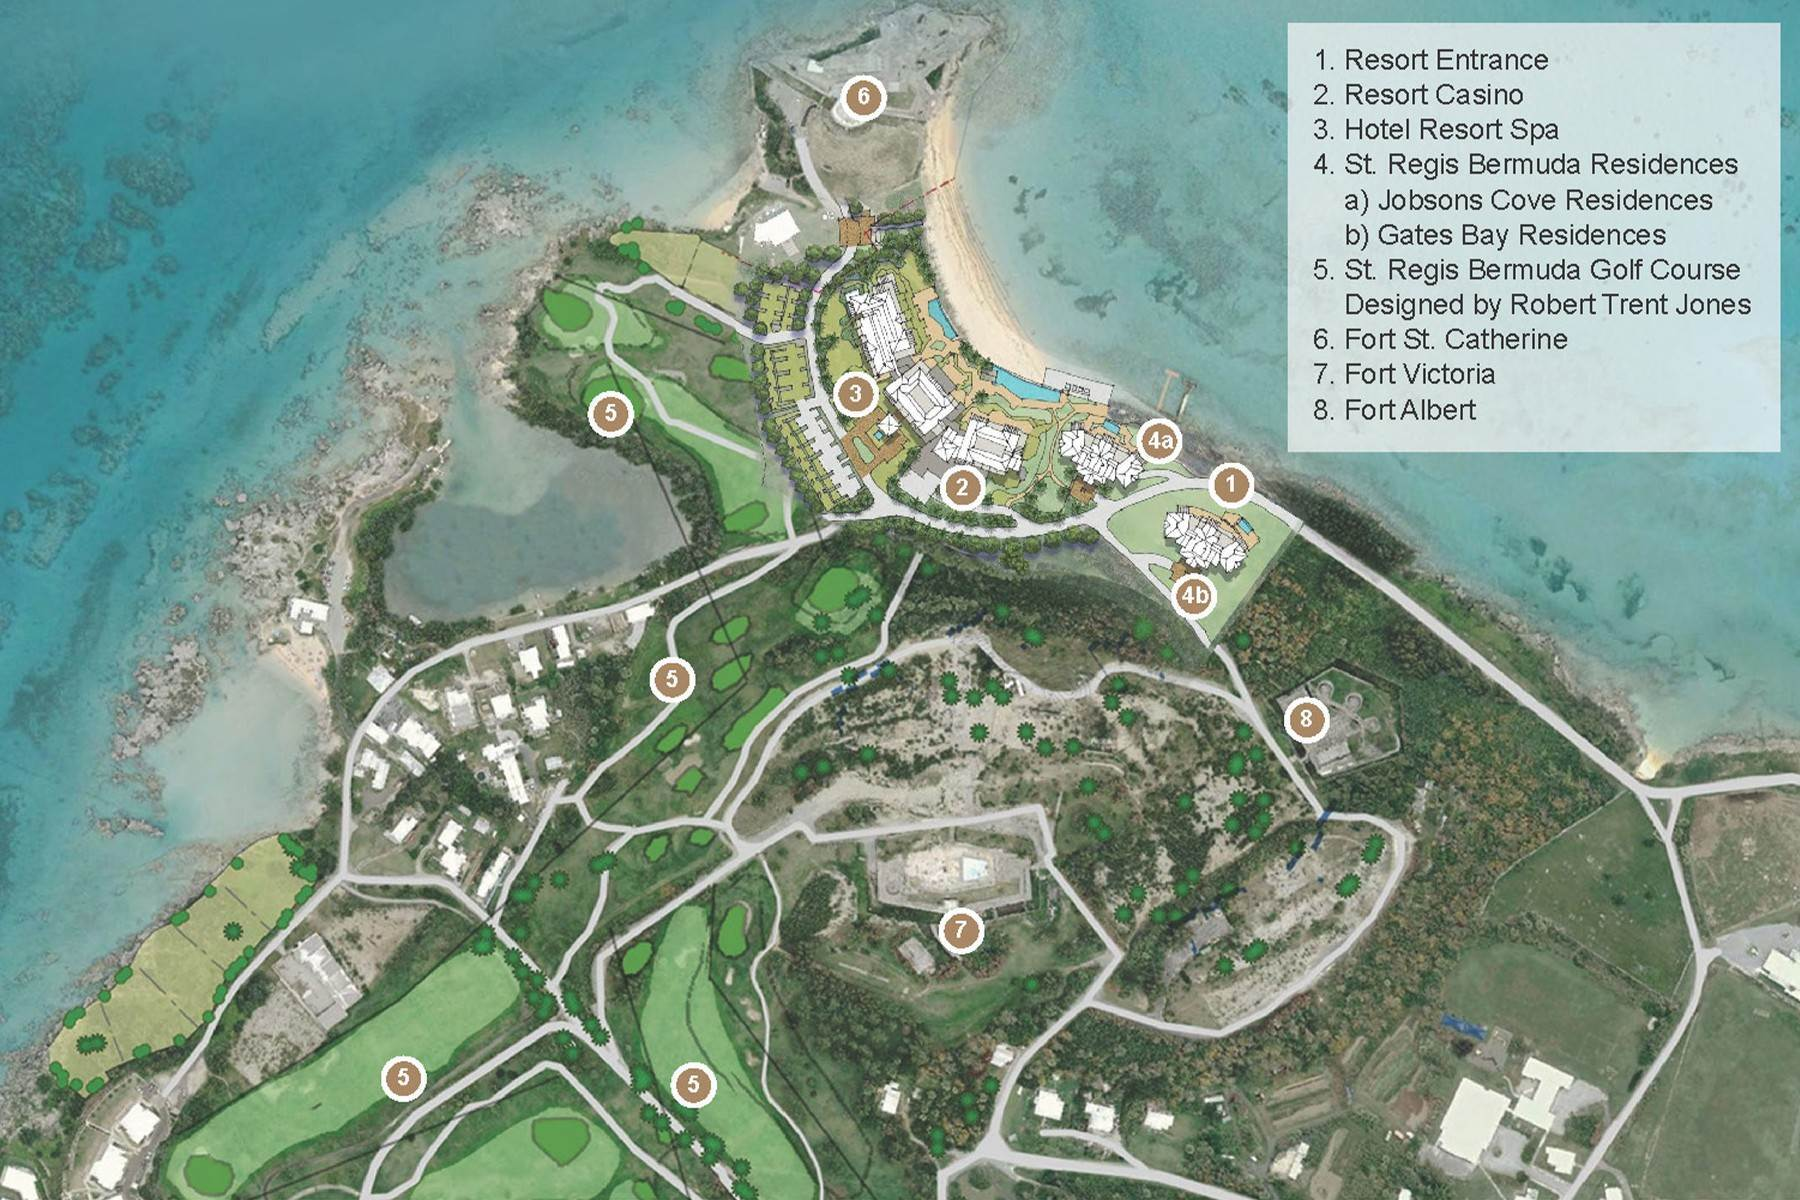 20. Condo / Townhouse / Flat for Sale at St. Regis Bermuda Residences - Gates Bay 4B St. Catherine's Beach St Georges Parish, GE03 Bermuda